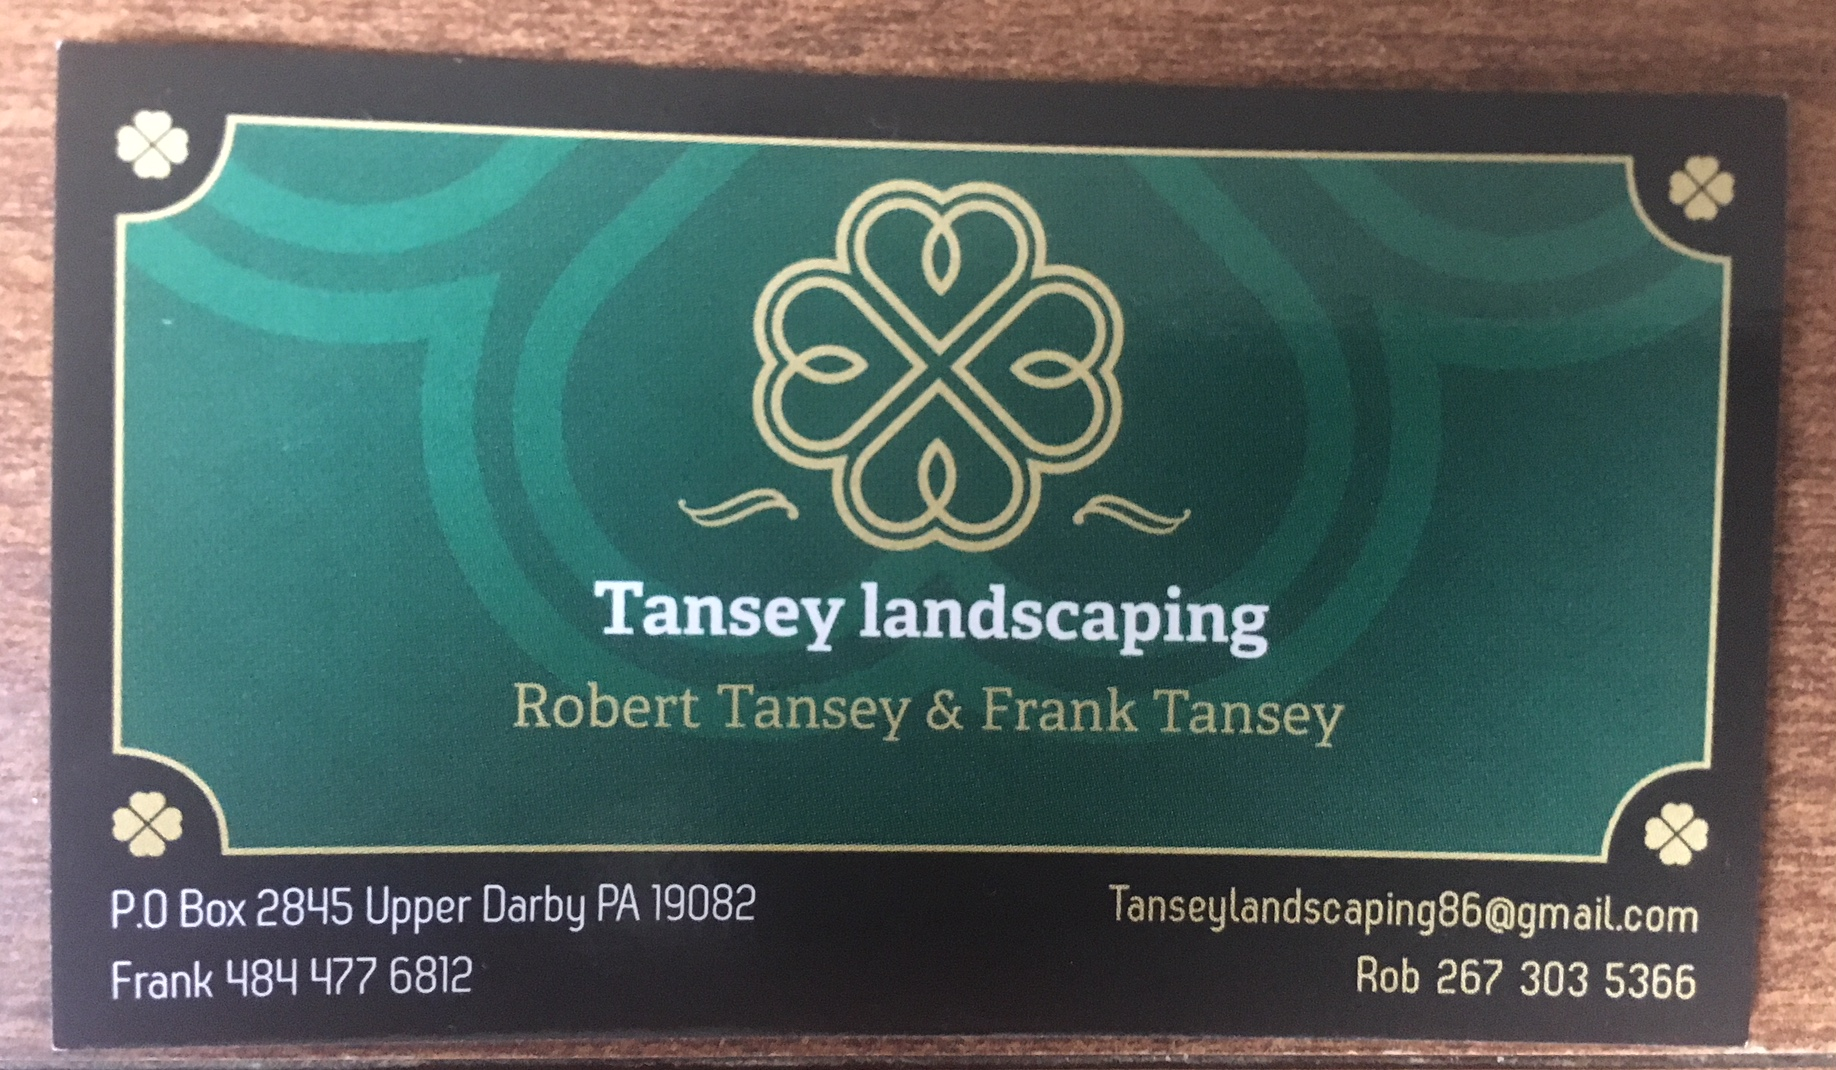 Tansey Landscaping Business Card.jpg